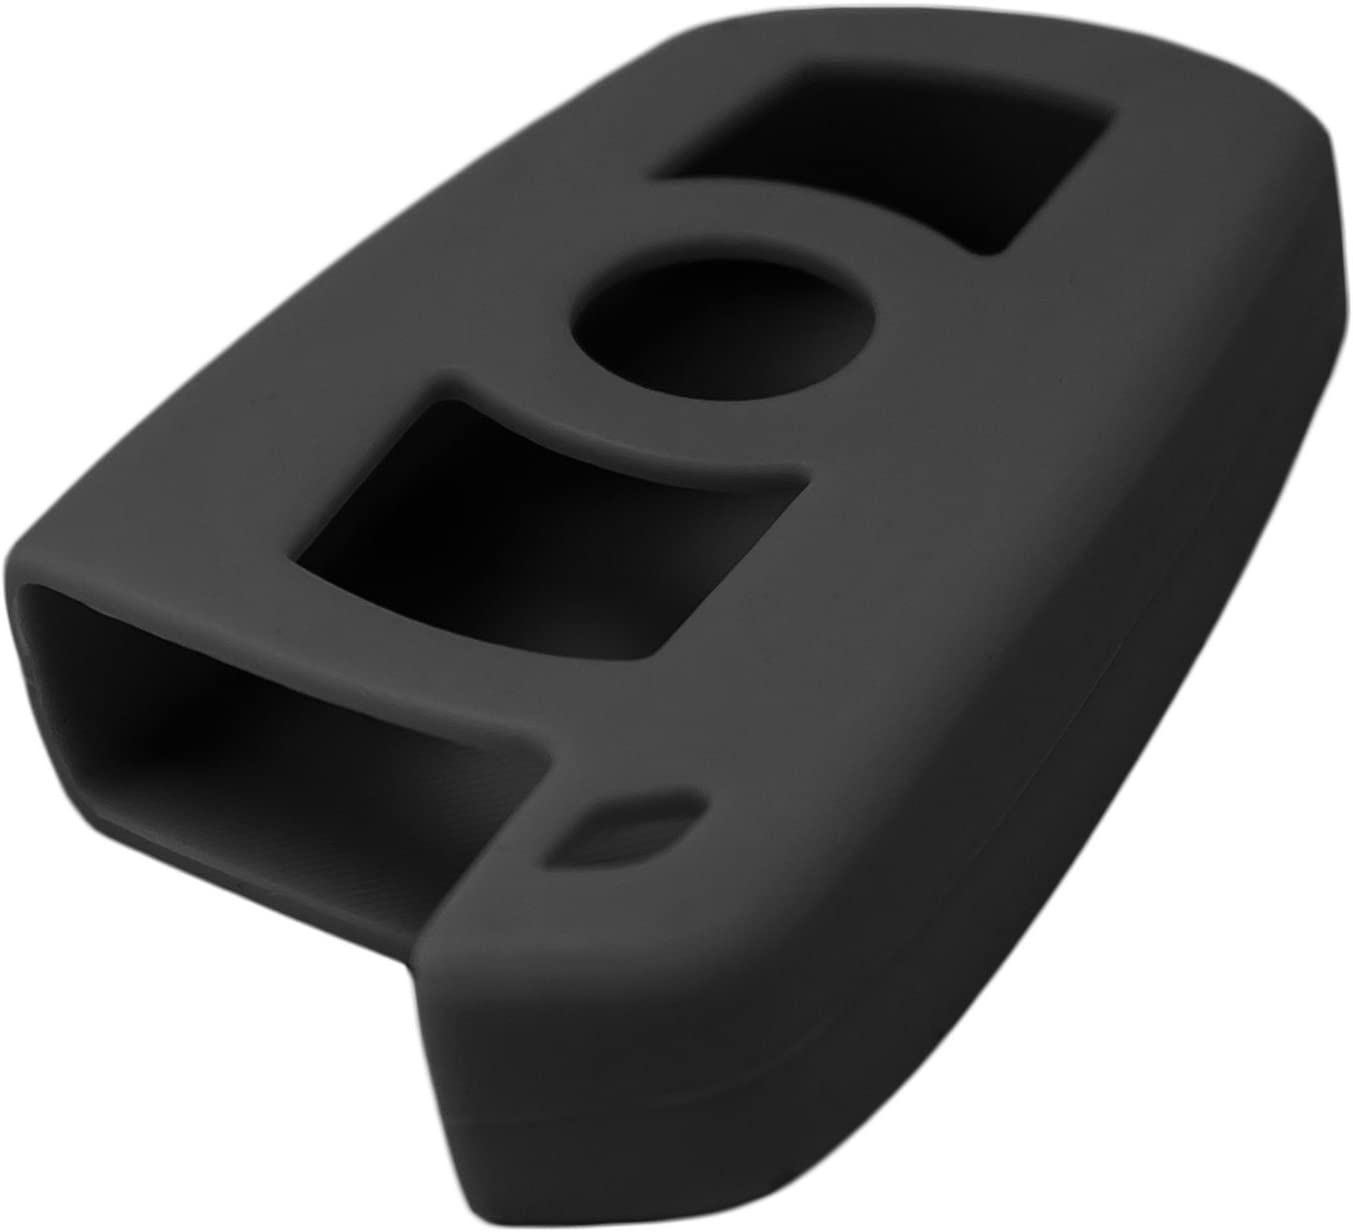 Keyless2Go New Silicone Cover Protective Case for Smart Keys w//Comfort Access with FCC KR55WK49147 Black